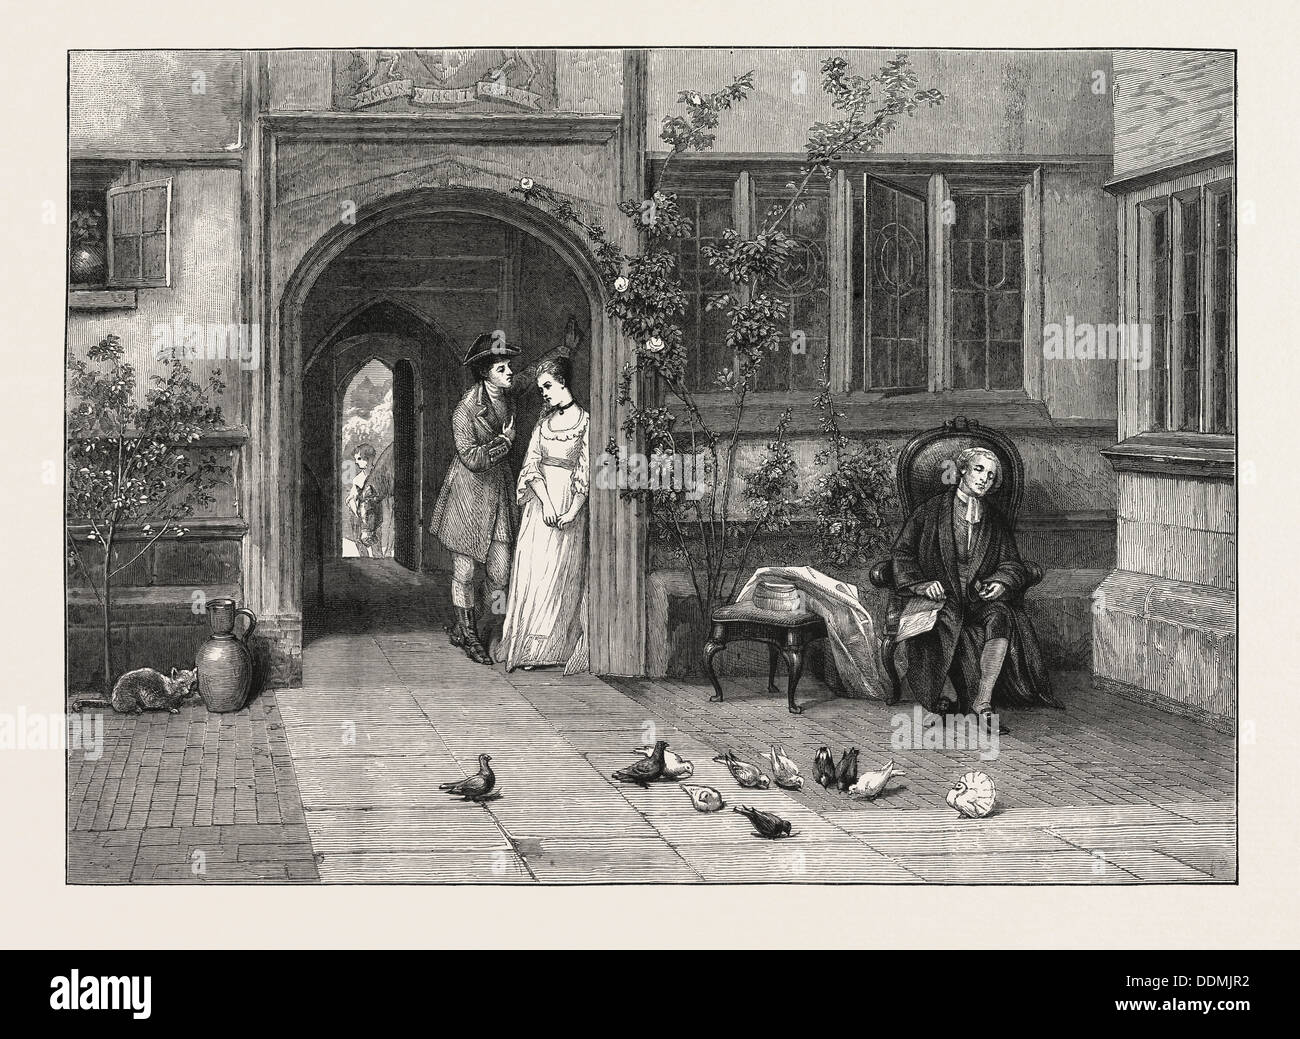 PLEADING THE OLD CAUSE, FROM THE PAINTING BY W.F. YEAMES, A.R.A., IN THE ROYAL ACADEMY, UK, 1873 - Stock Image